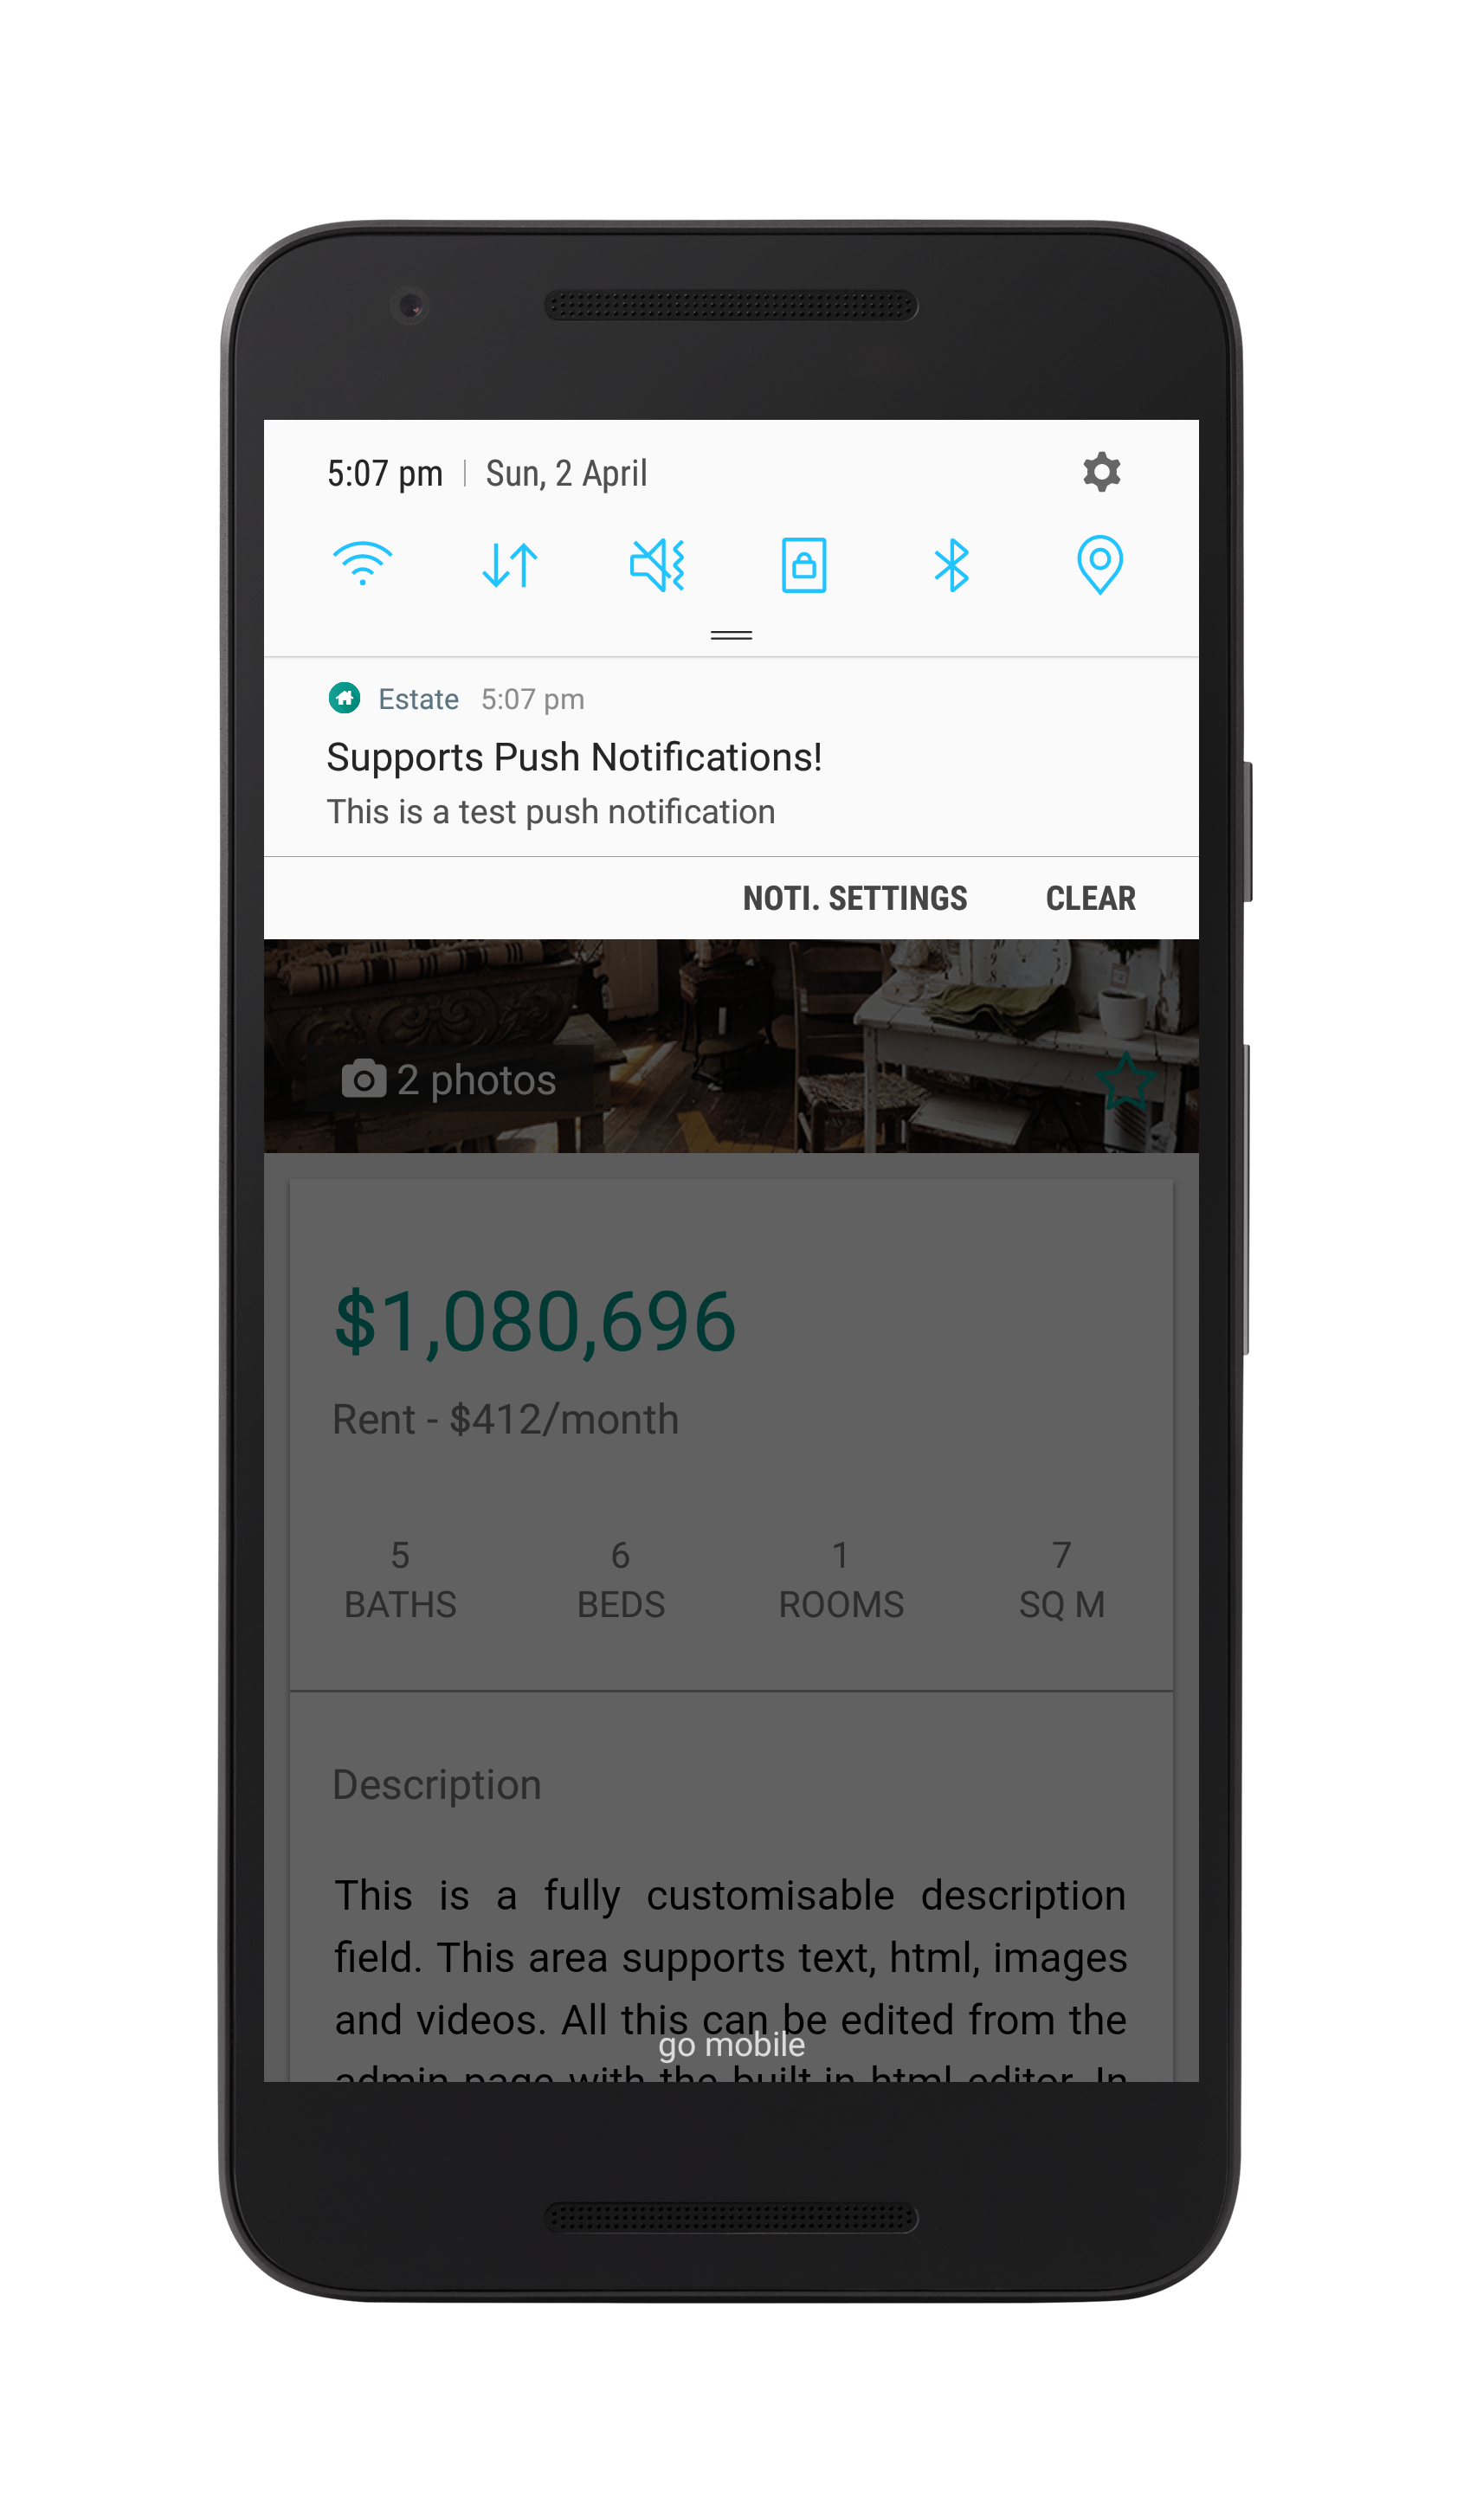 Estate - A Property Real Estate App Template by neurondigital ...